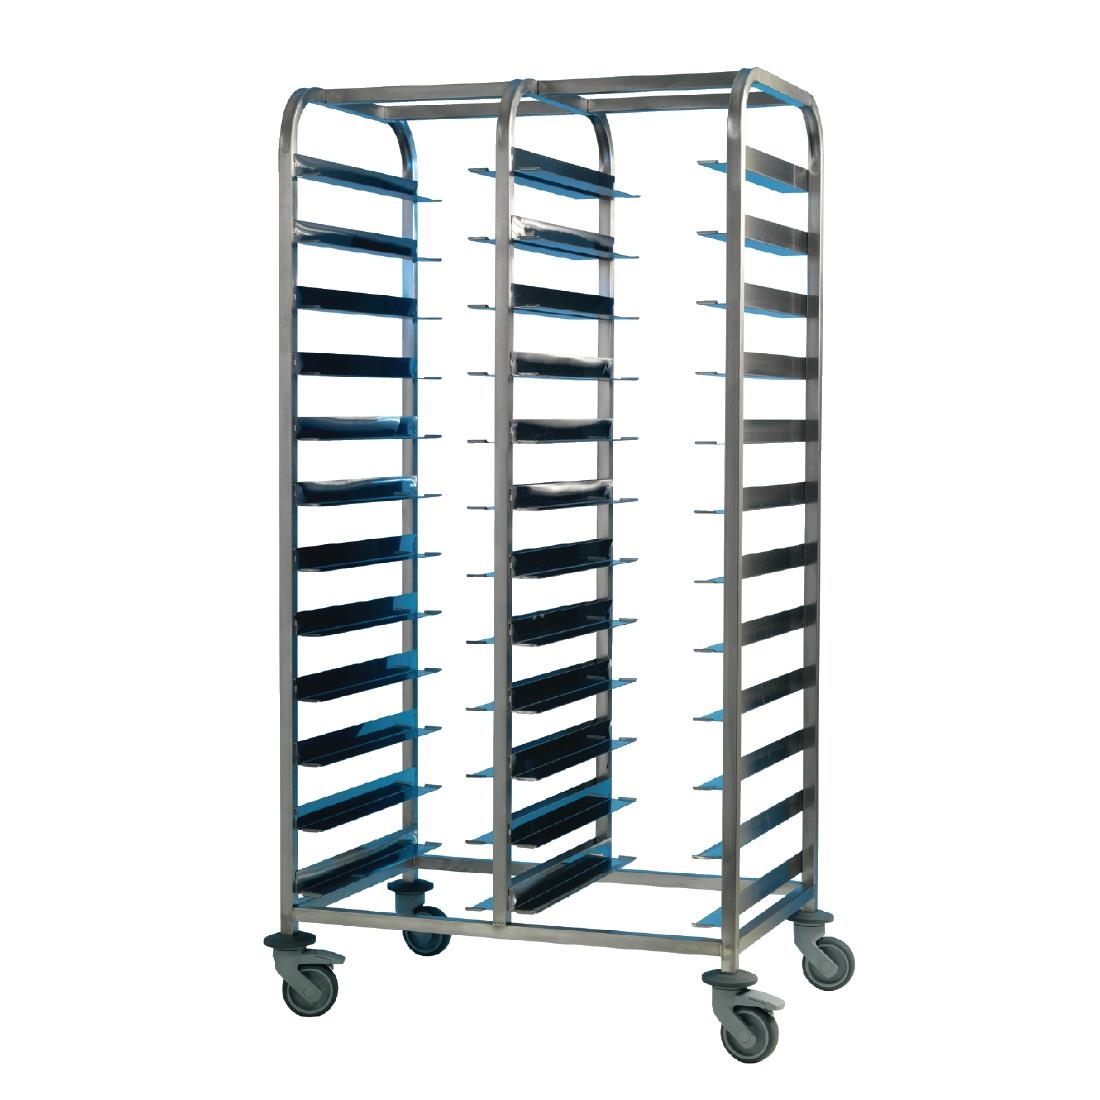 Image of EAIS Stainless Steel Clearing Trolley 24 Shelves